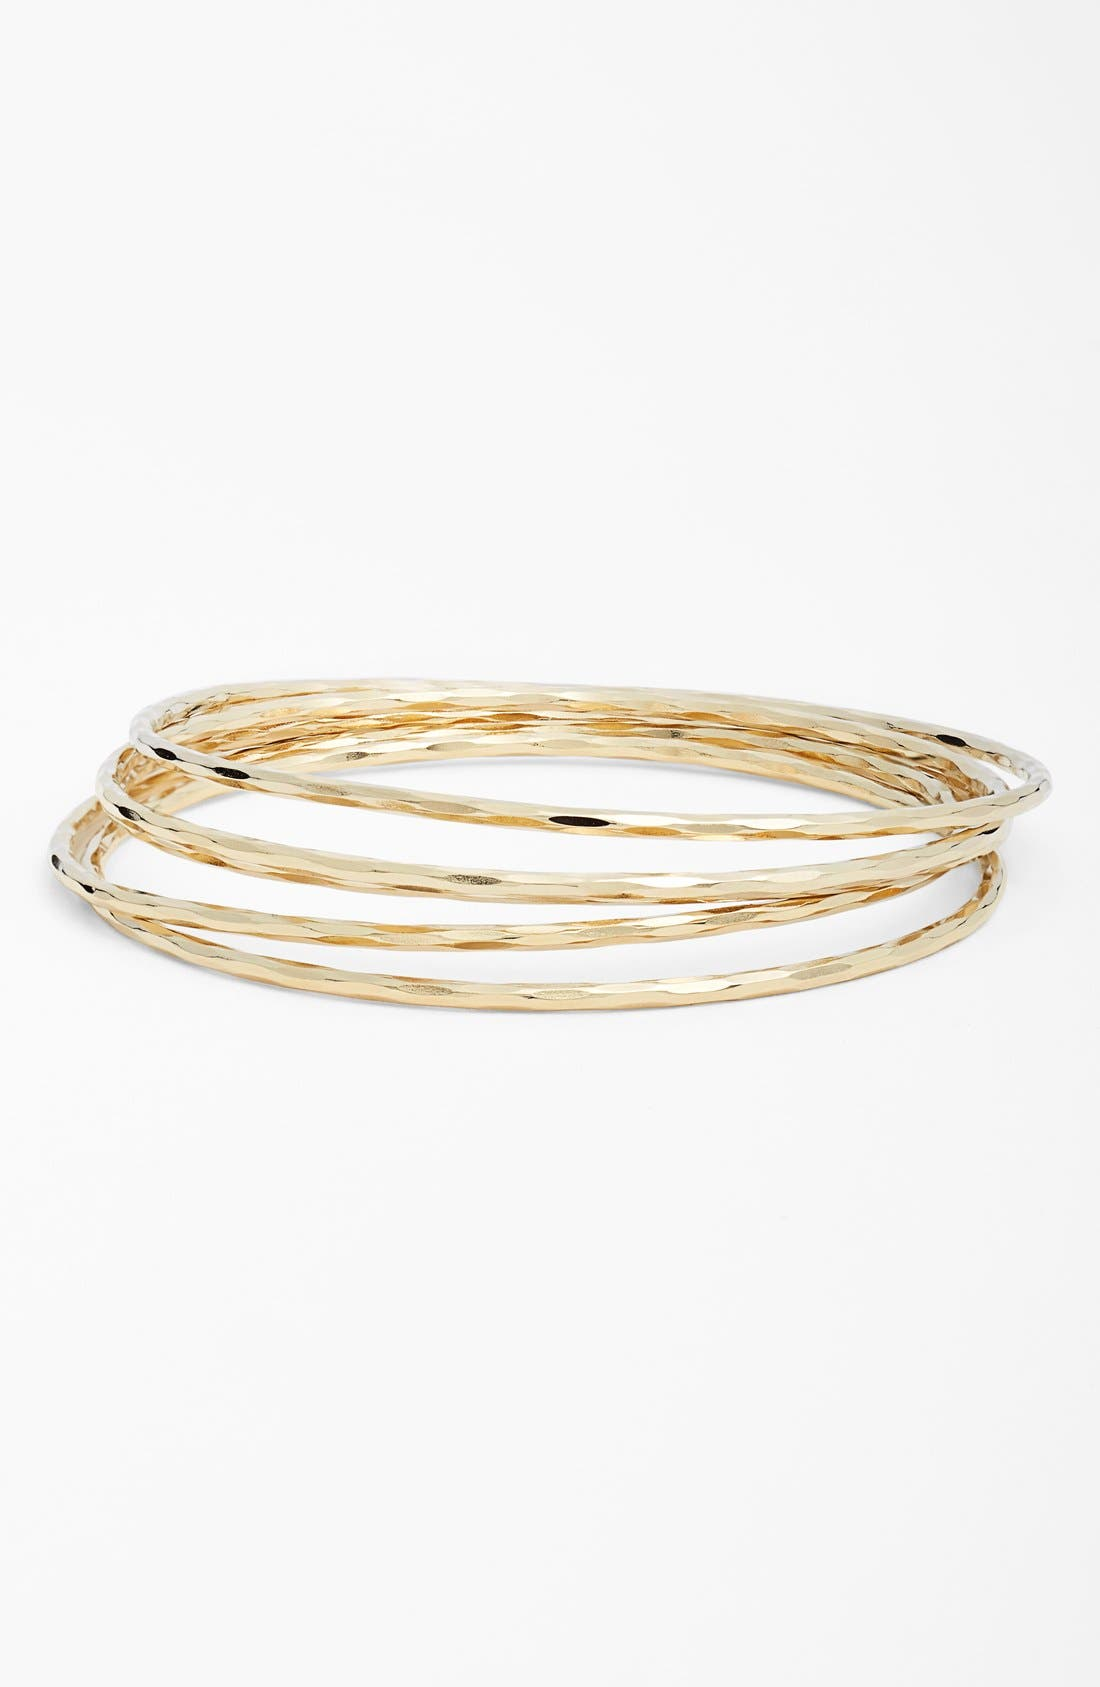 Main Image - Nordstrom Hammered Bangles (Set of 5)